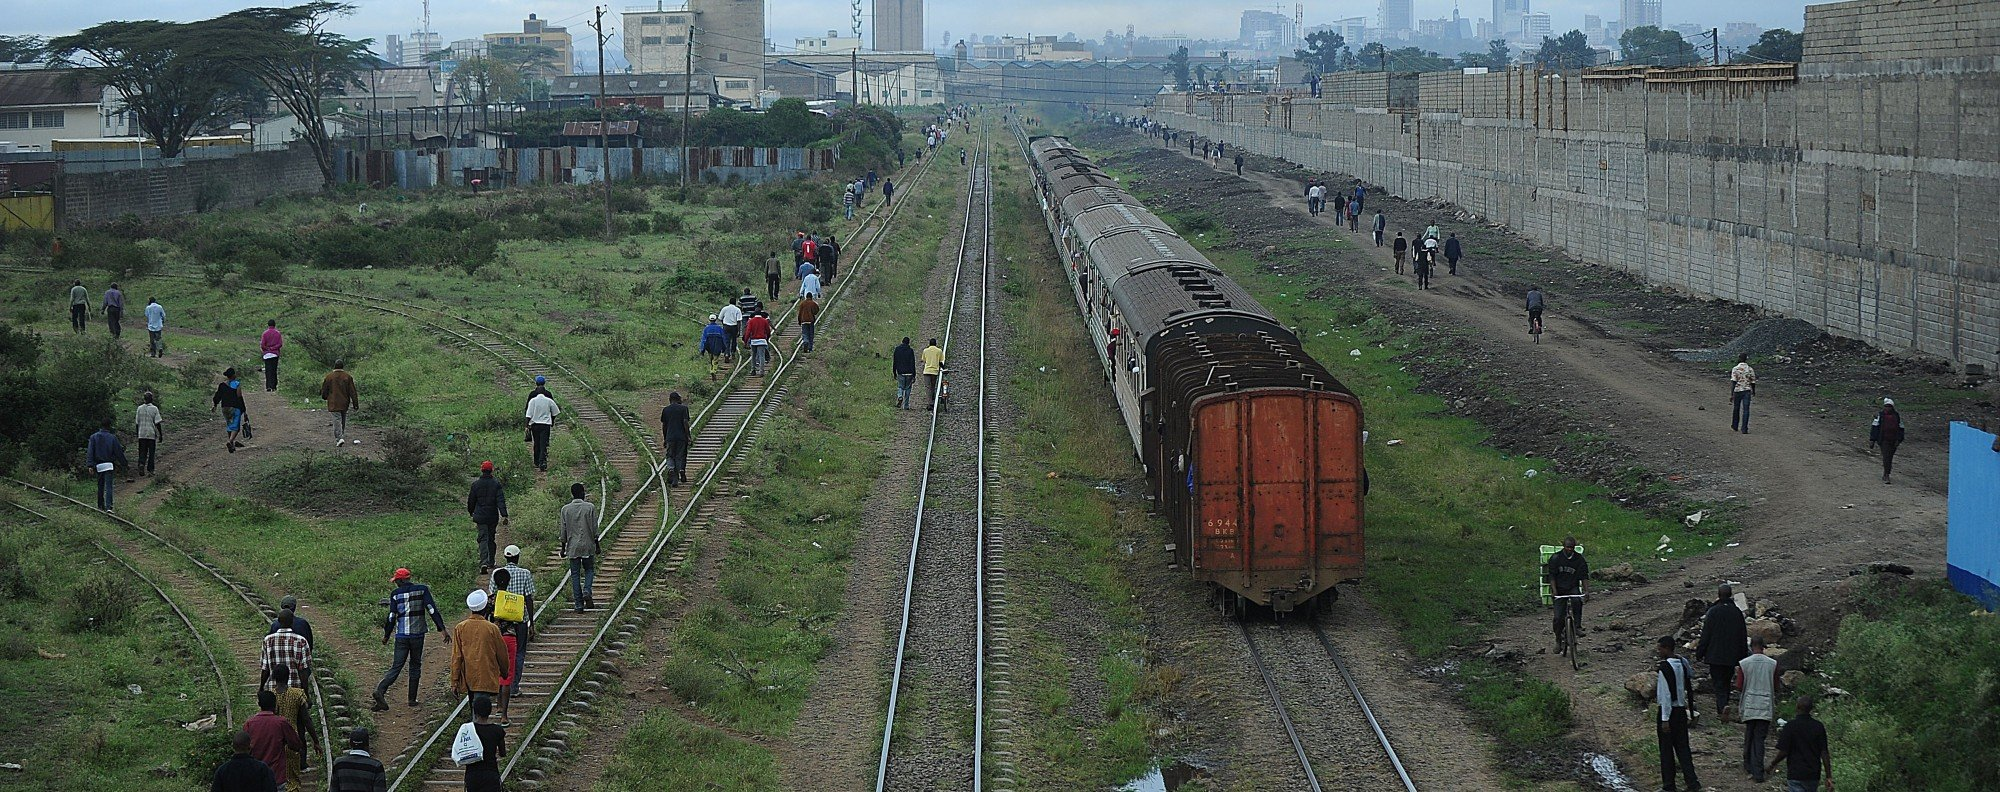 Kenya Road Sign >> The Lunatic Express: how Kenya's colonial railway compares to new China-built line | Post ...